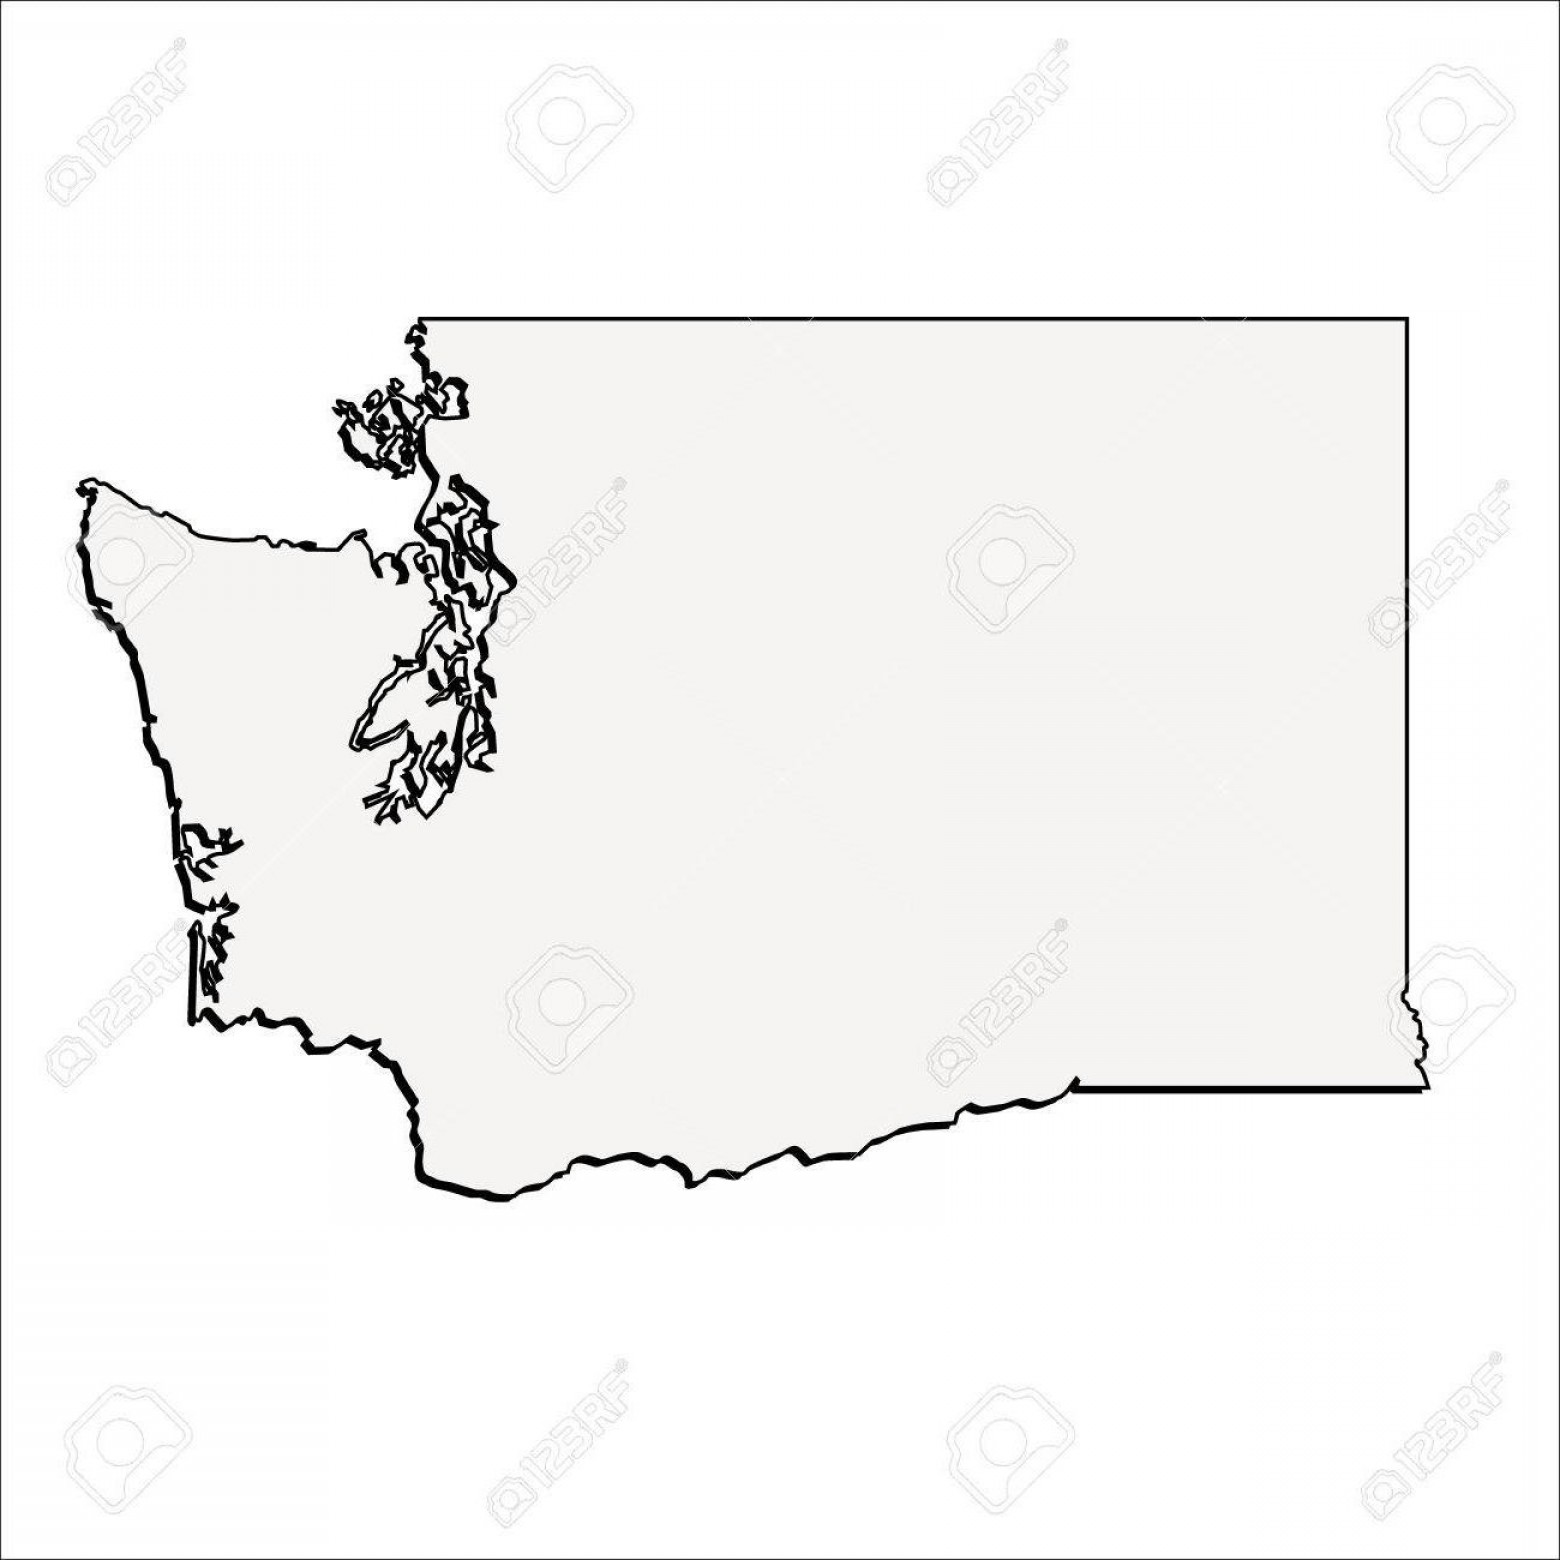 Washington State Map Vector: Best Vector Washington State Outline Map Design